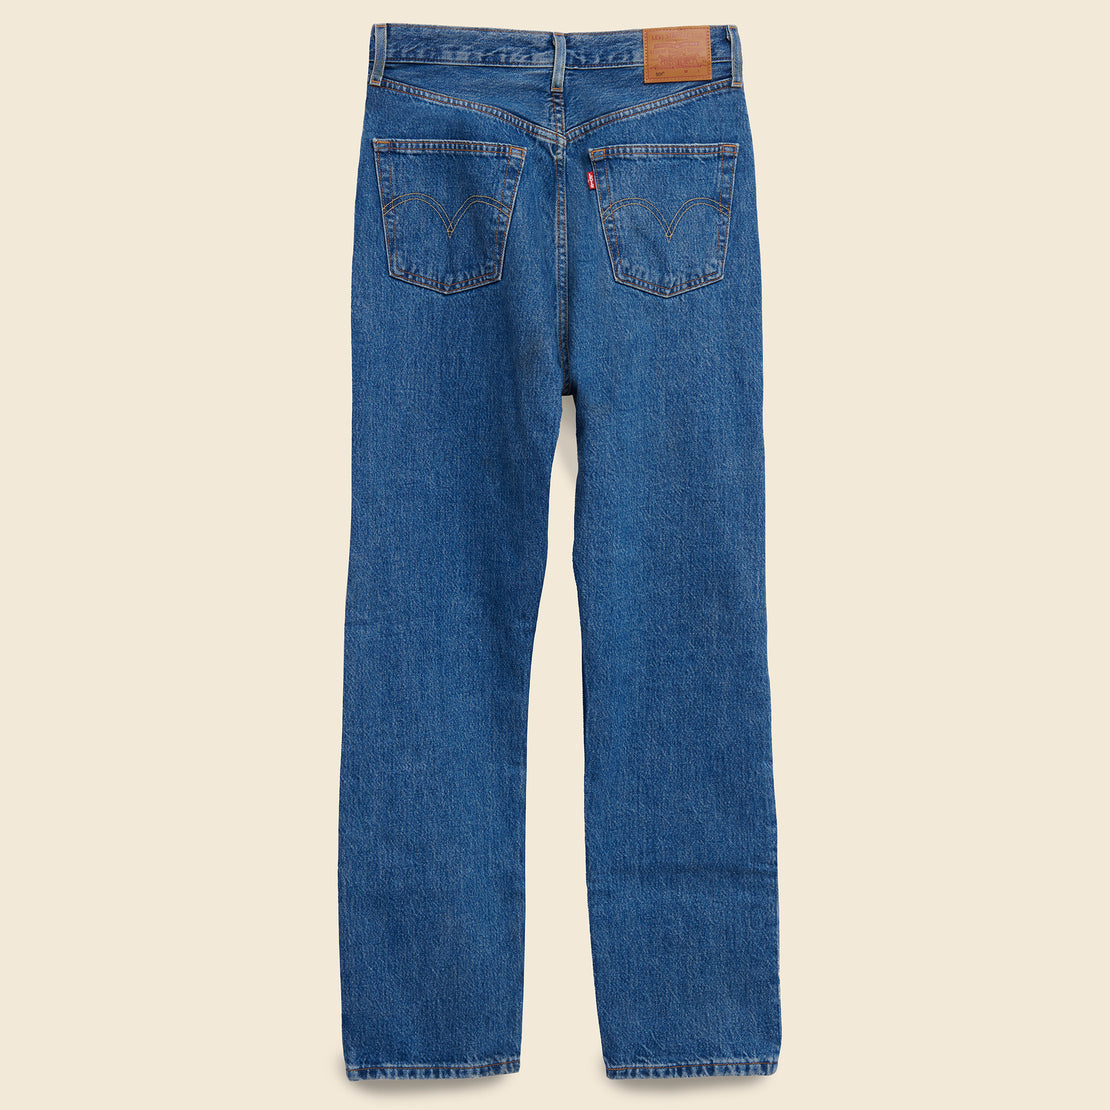 501 Original Jeans - Patching In